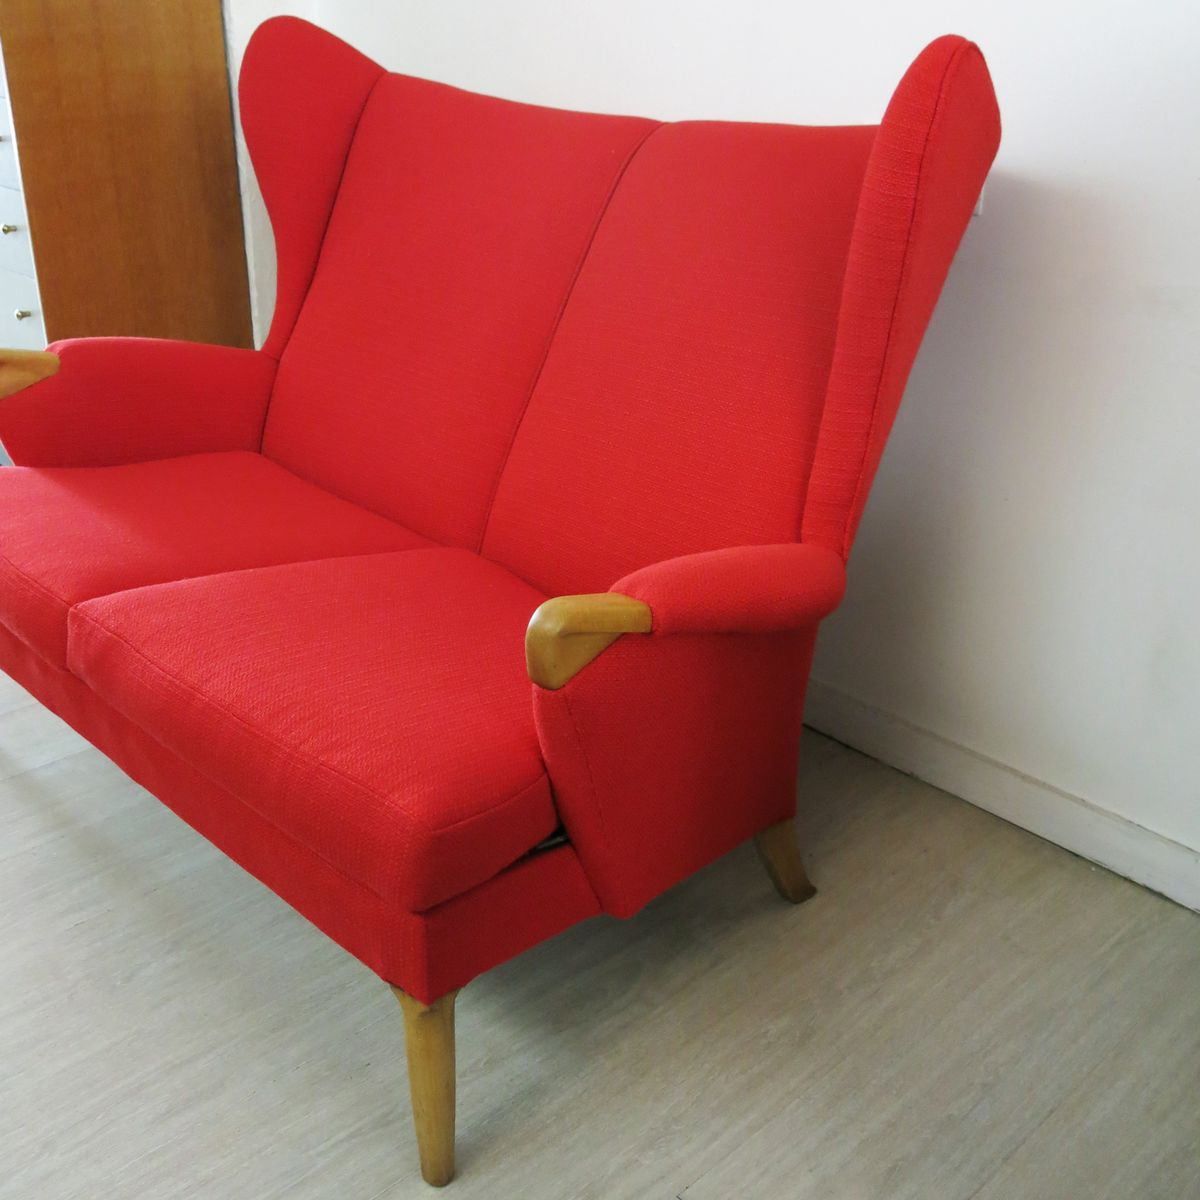 Vintage Red Wingback Sofa From Parker Knoll 1960s For Sale At Pamono